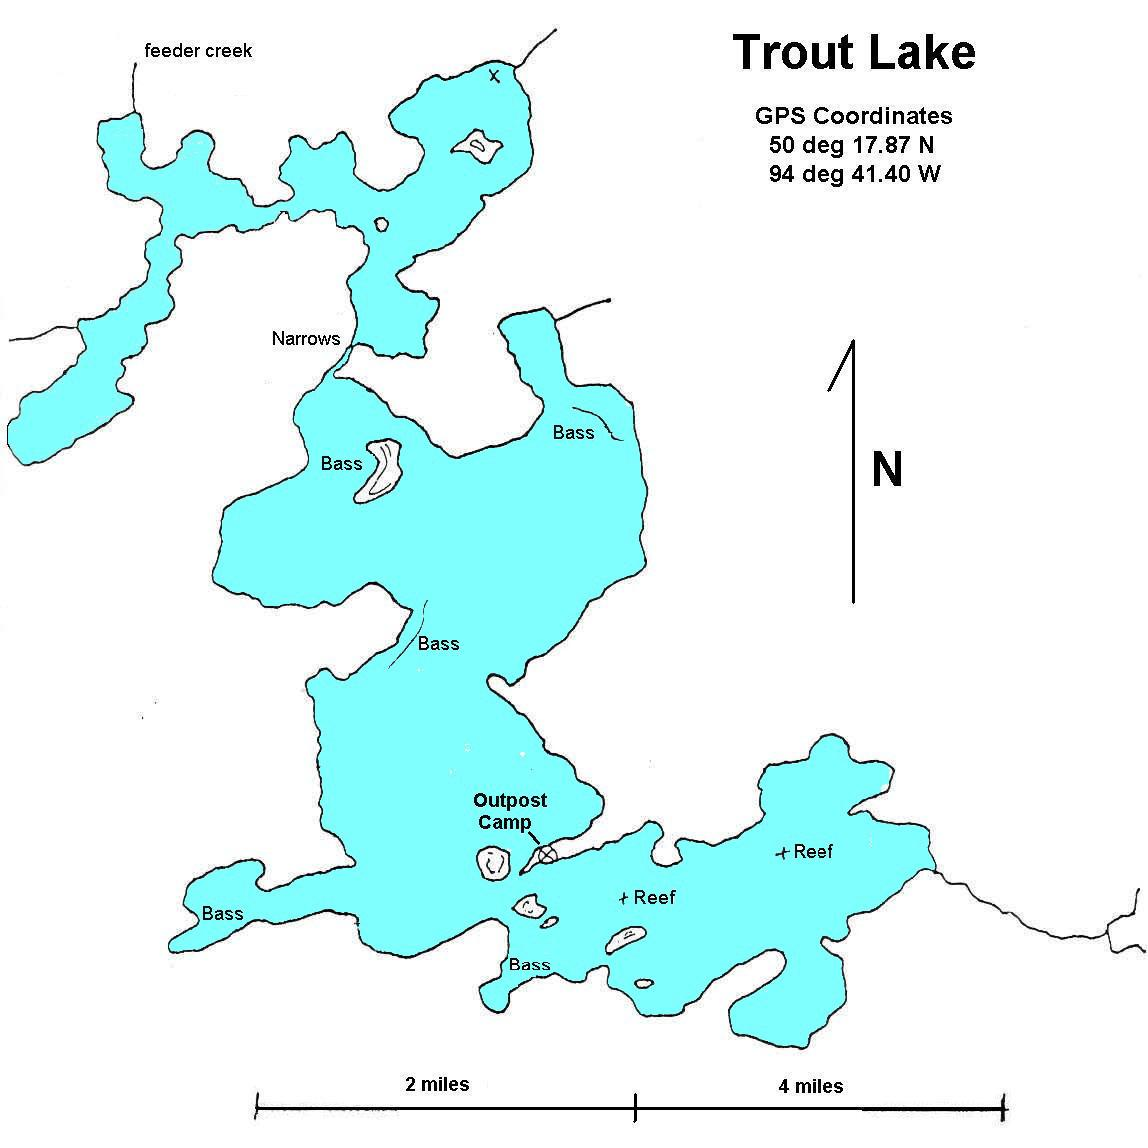 Trout Lake Walsten Outposts - Ontario fishing lakes maps